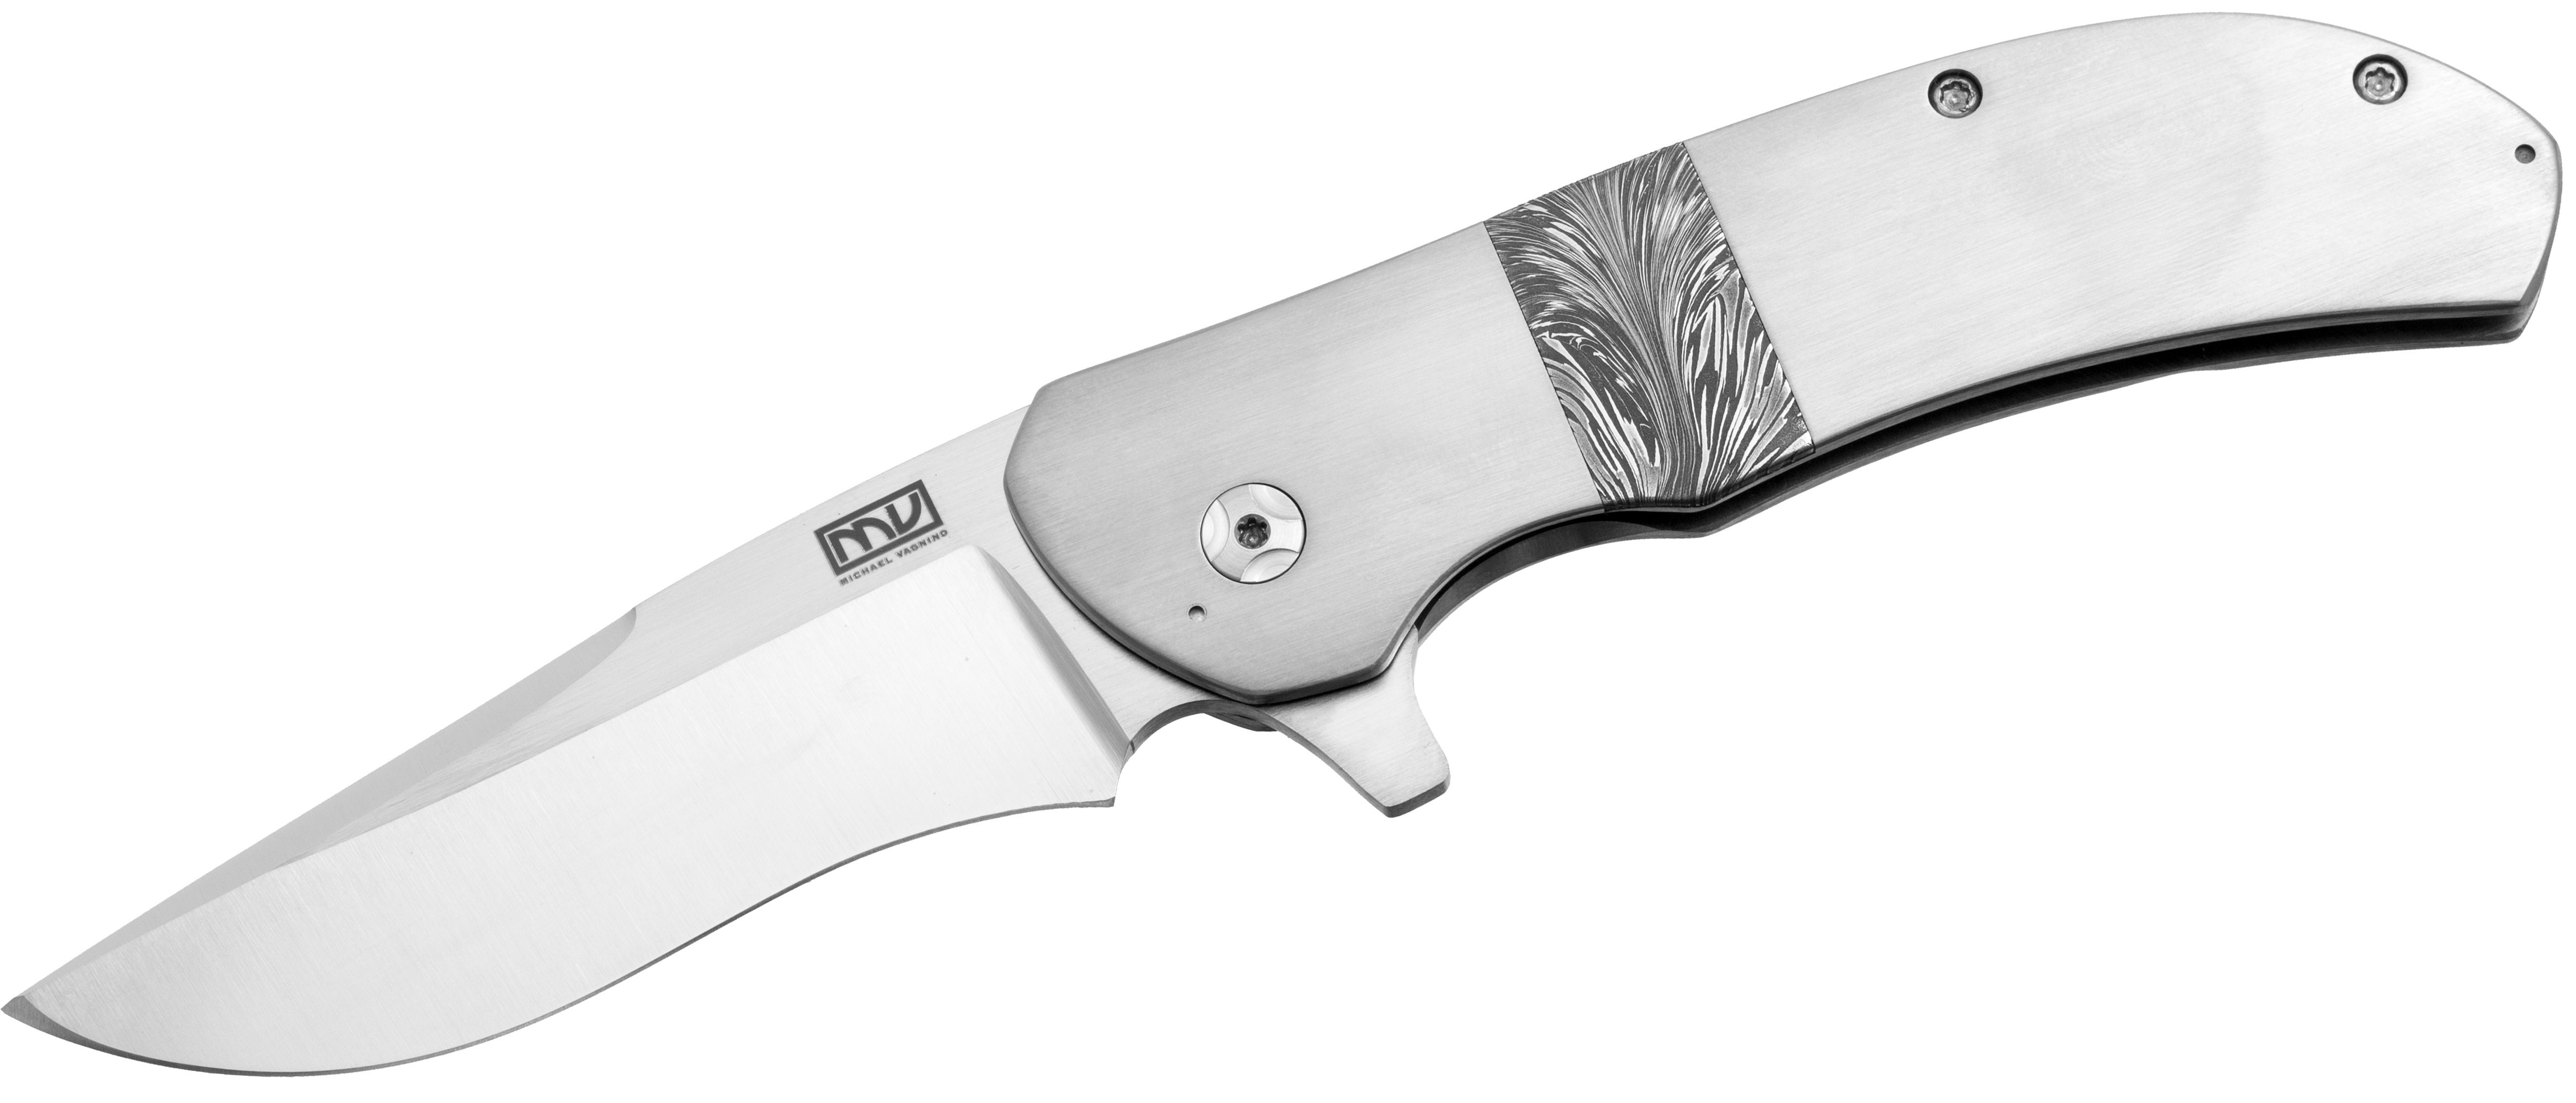 Mike Vagnino Custom Eliminator Flipper 3.375 inch CTS-XHP Drop Point Blade, Titanium Handles with Eruption Damascus Inlay